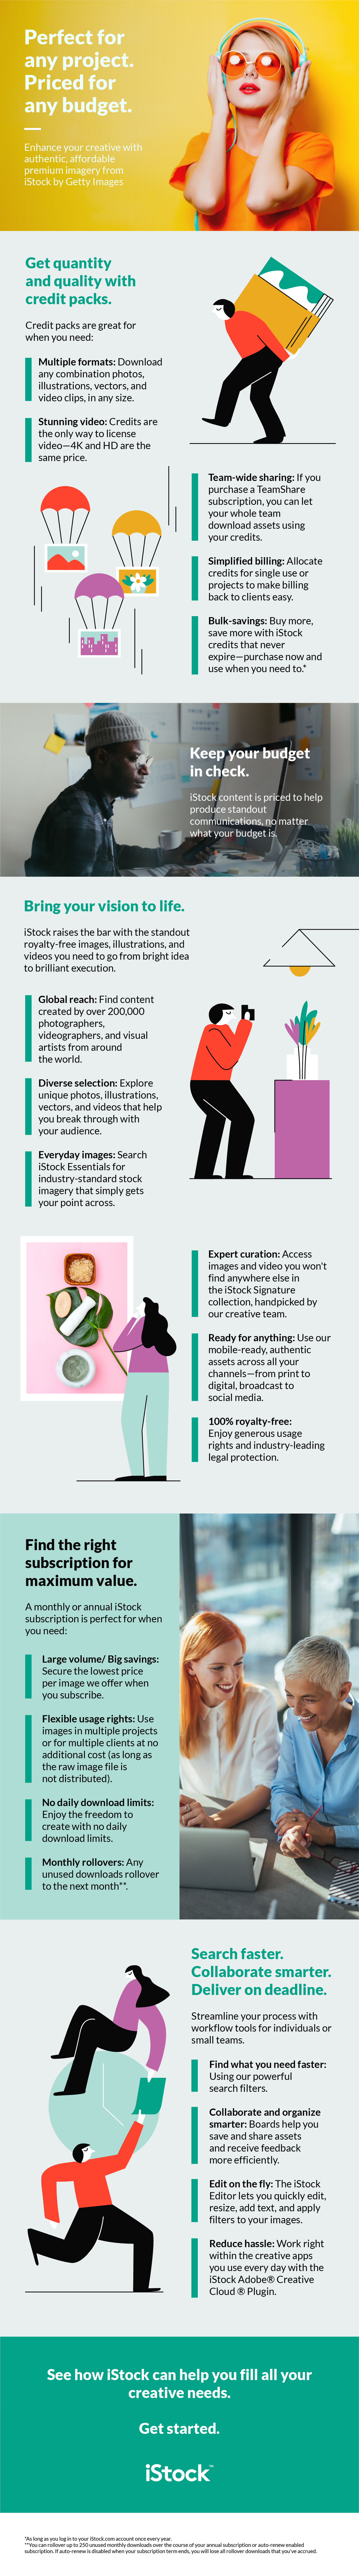 Product_infographic_iStock_1.17.png.png